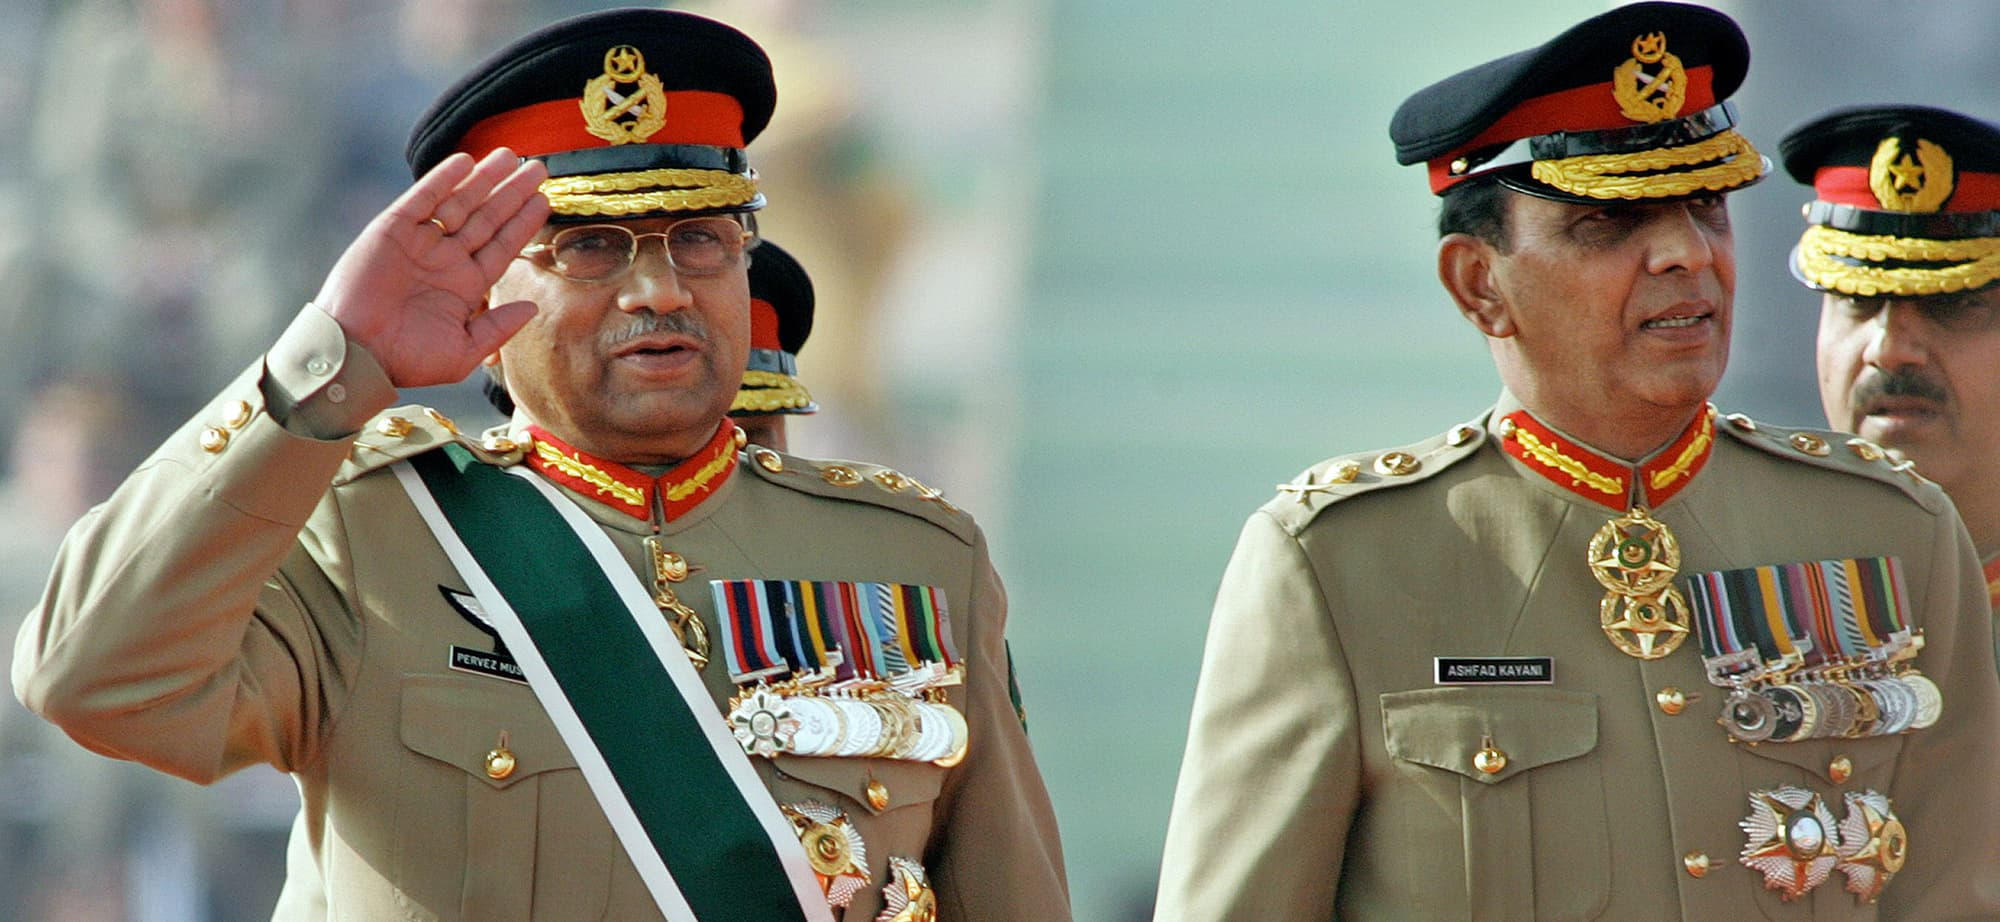 (FILES) In this photograph taken on November 28, 2007, then Pakistani President Pervez Musharraf (L) salutes as he arrives with then newly appointed army chief General Ashfaq Kiyani during the change of command ceremony in Rawalpindi.  A Pakistani court on April 18, 2013, has ordered the arrest of former military ruler Pervez Musharraf for his controversial decision to dismiss judges when he imposed emergency rule in 2007, officials said. It was not immediately clear if or when the retired general would be arrested